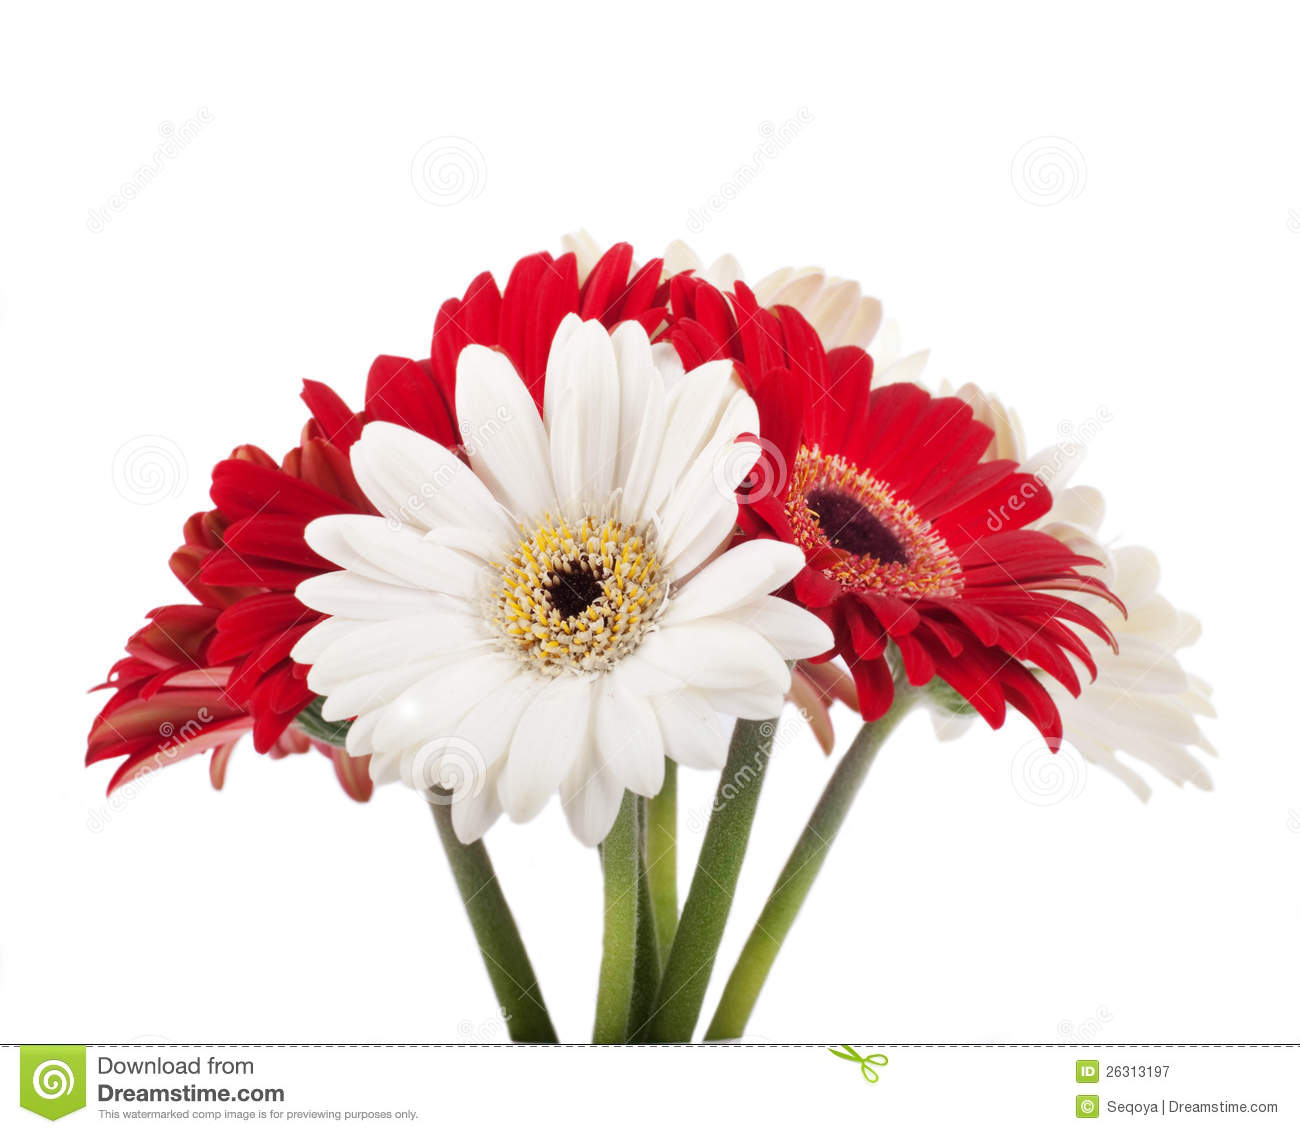 White and red flowers bouquet stock image image of beautiful white and red flowers bouquet mightylinksfo Gallery